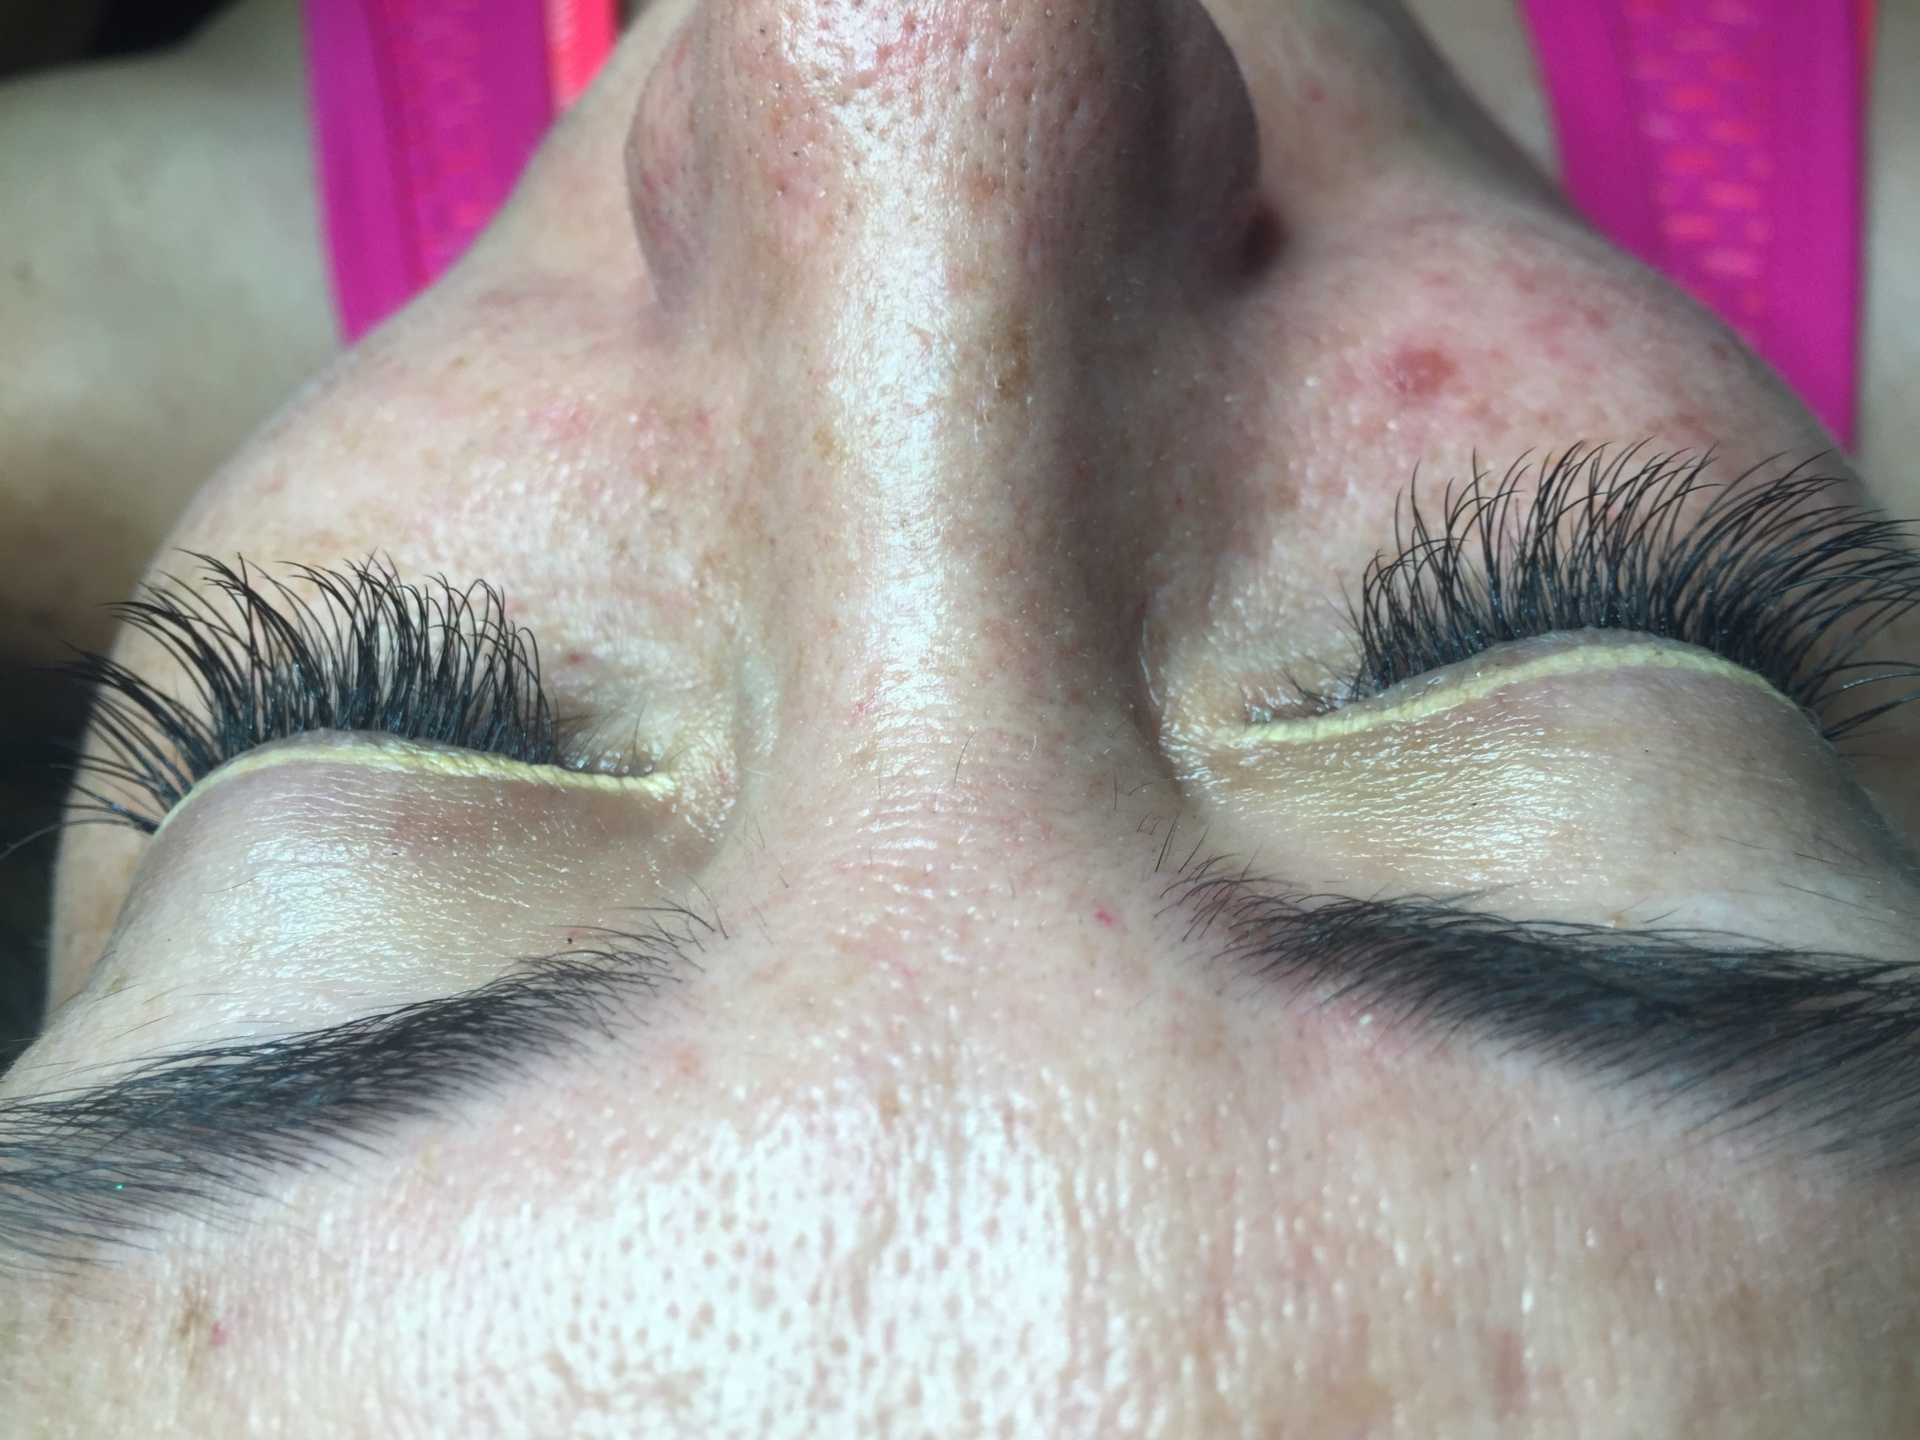 Mink Lashes Added For Length and Fullness